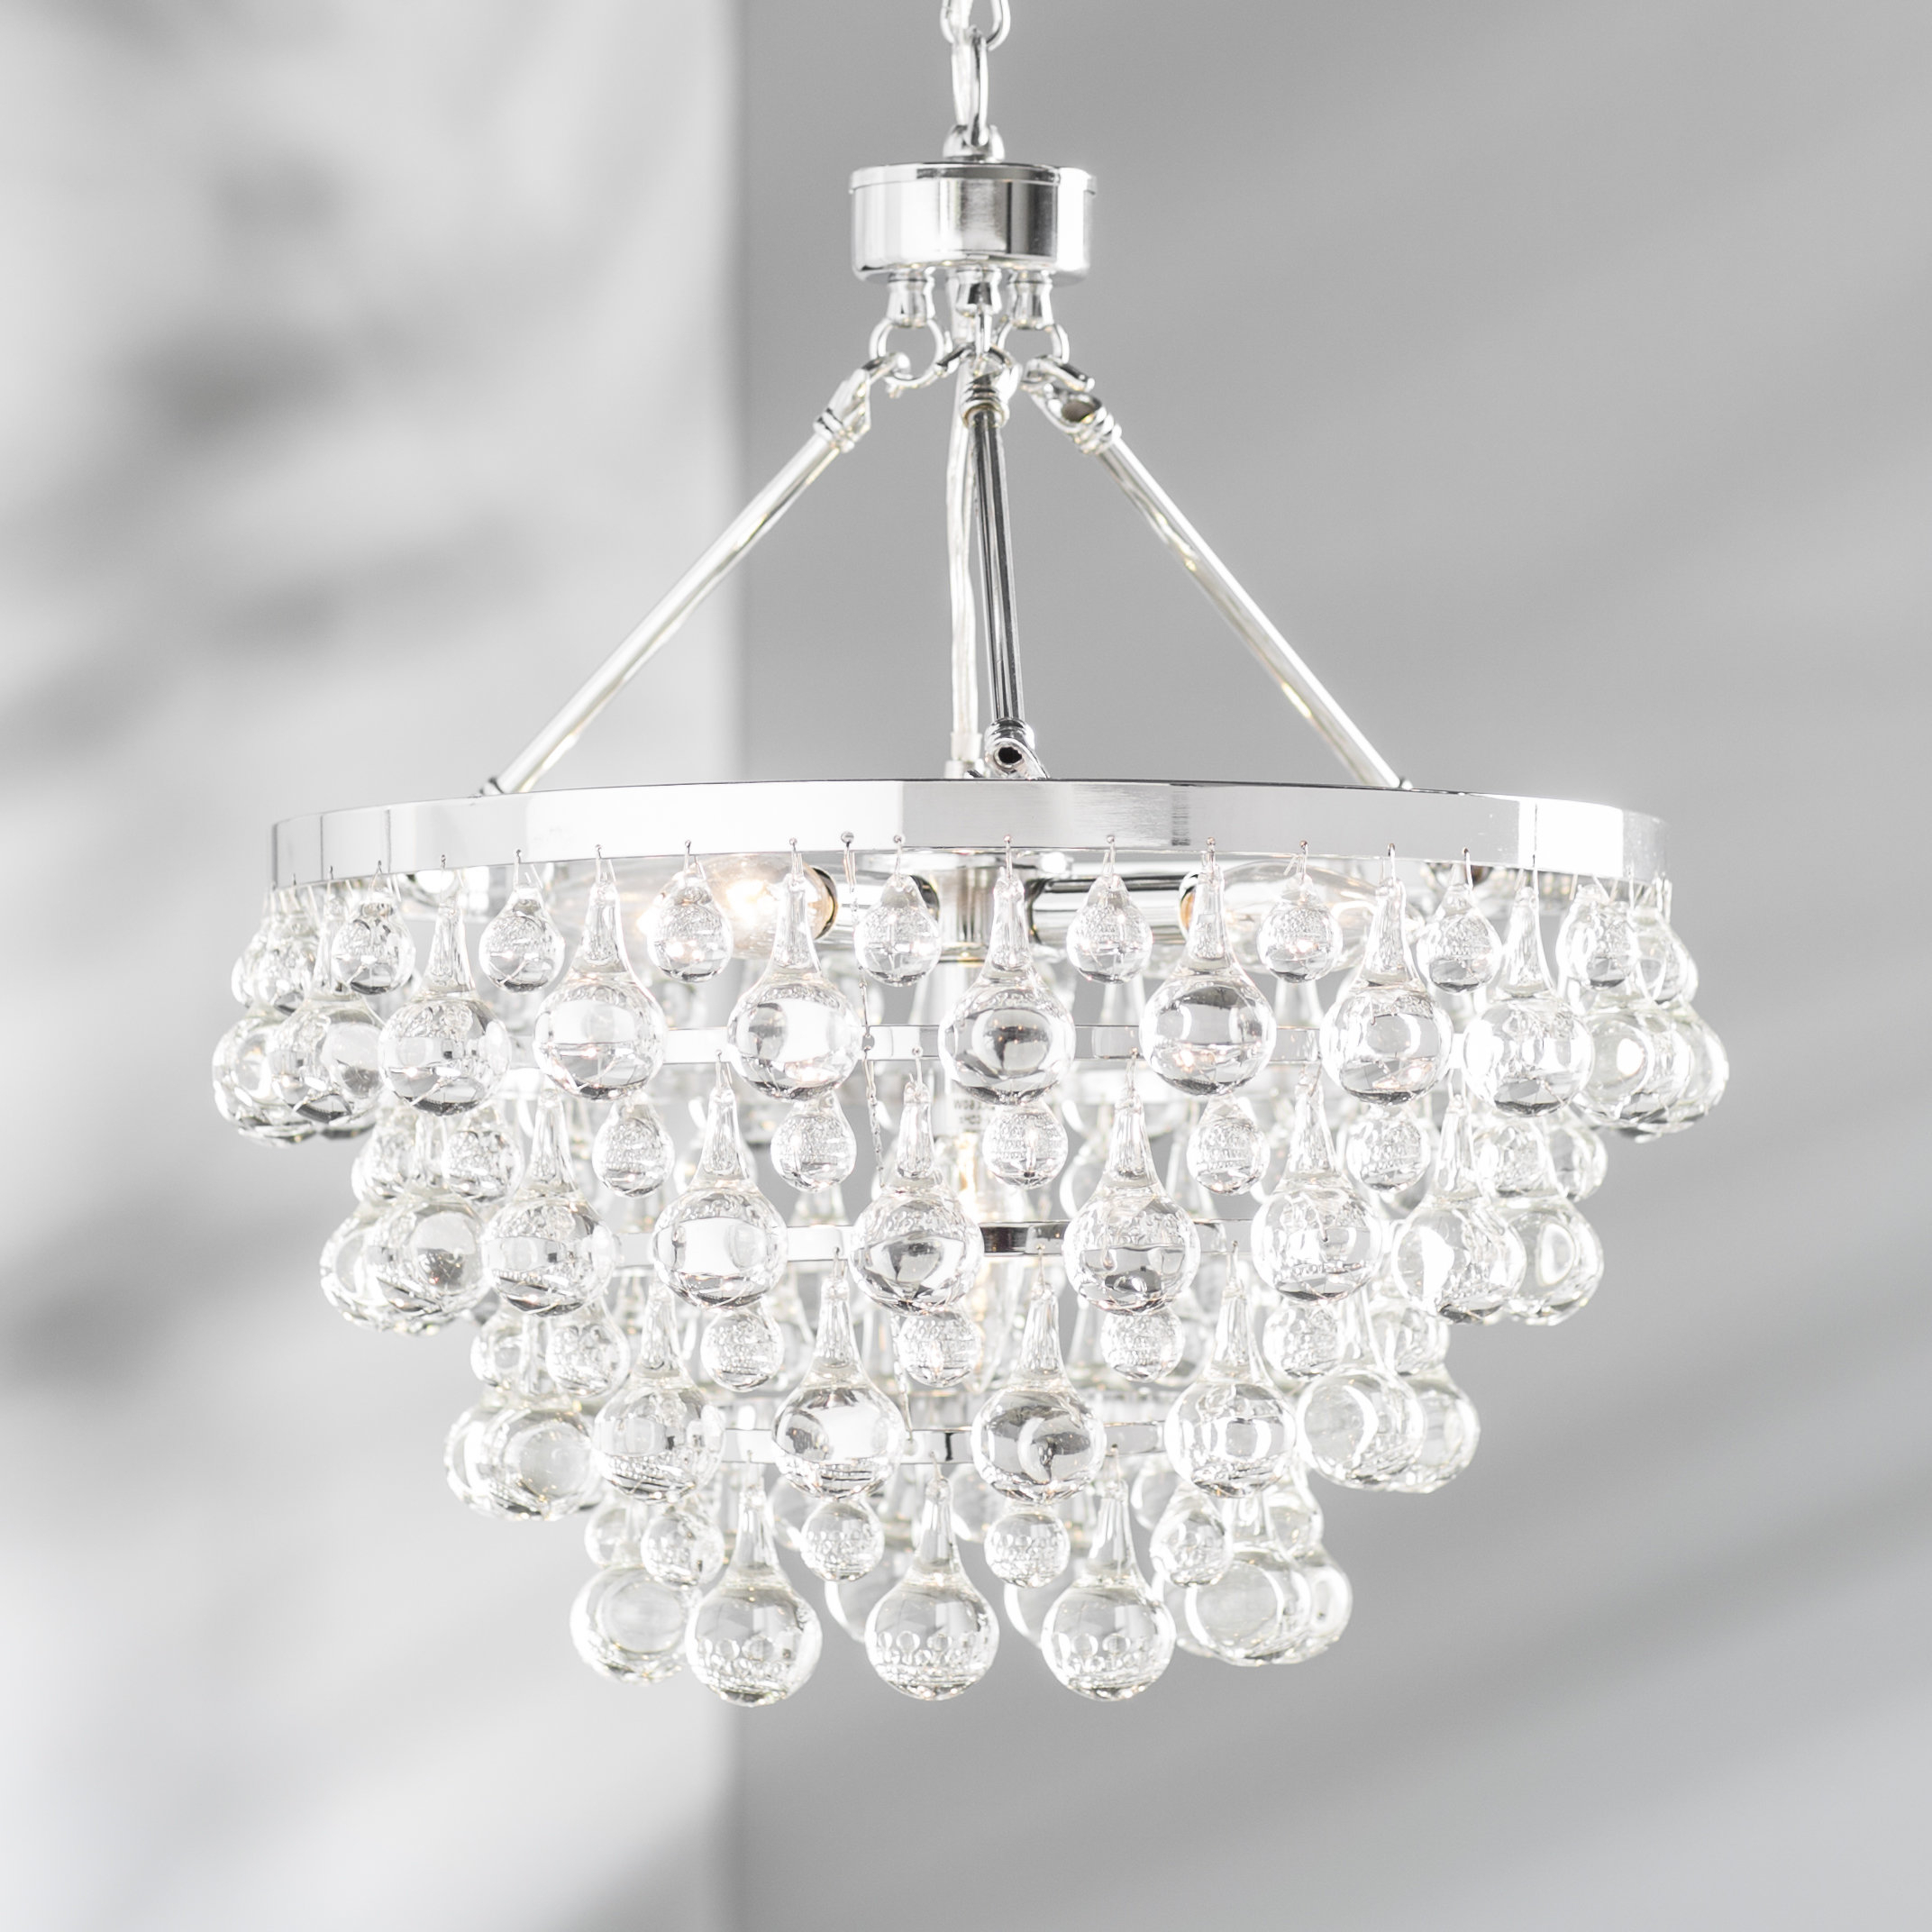 Ladonna 5 Light Novelty Chandeliers In Most Up To Date Willa Arlo Interiors Ahern 5 Light Crystal Chandelier (View 10 of 20)